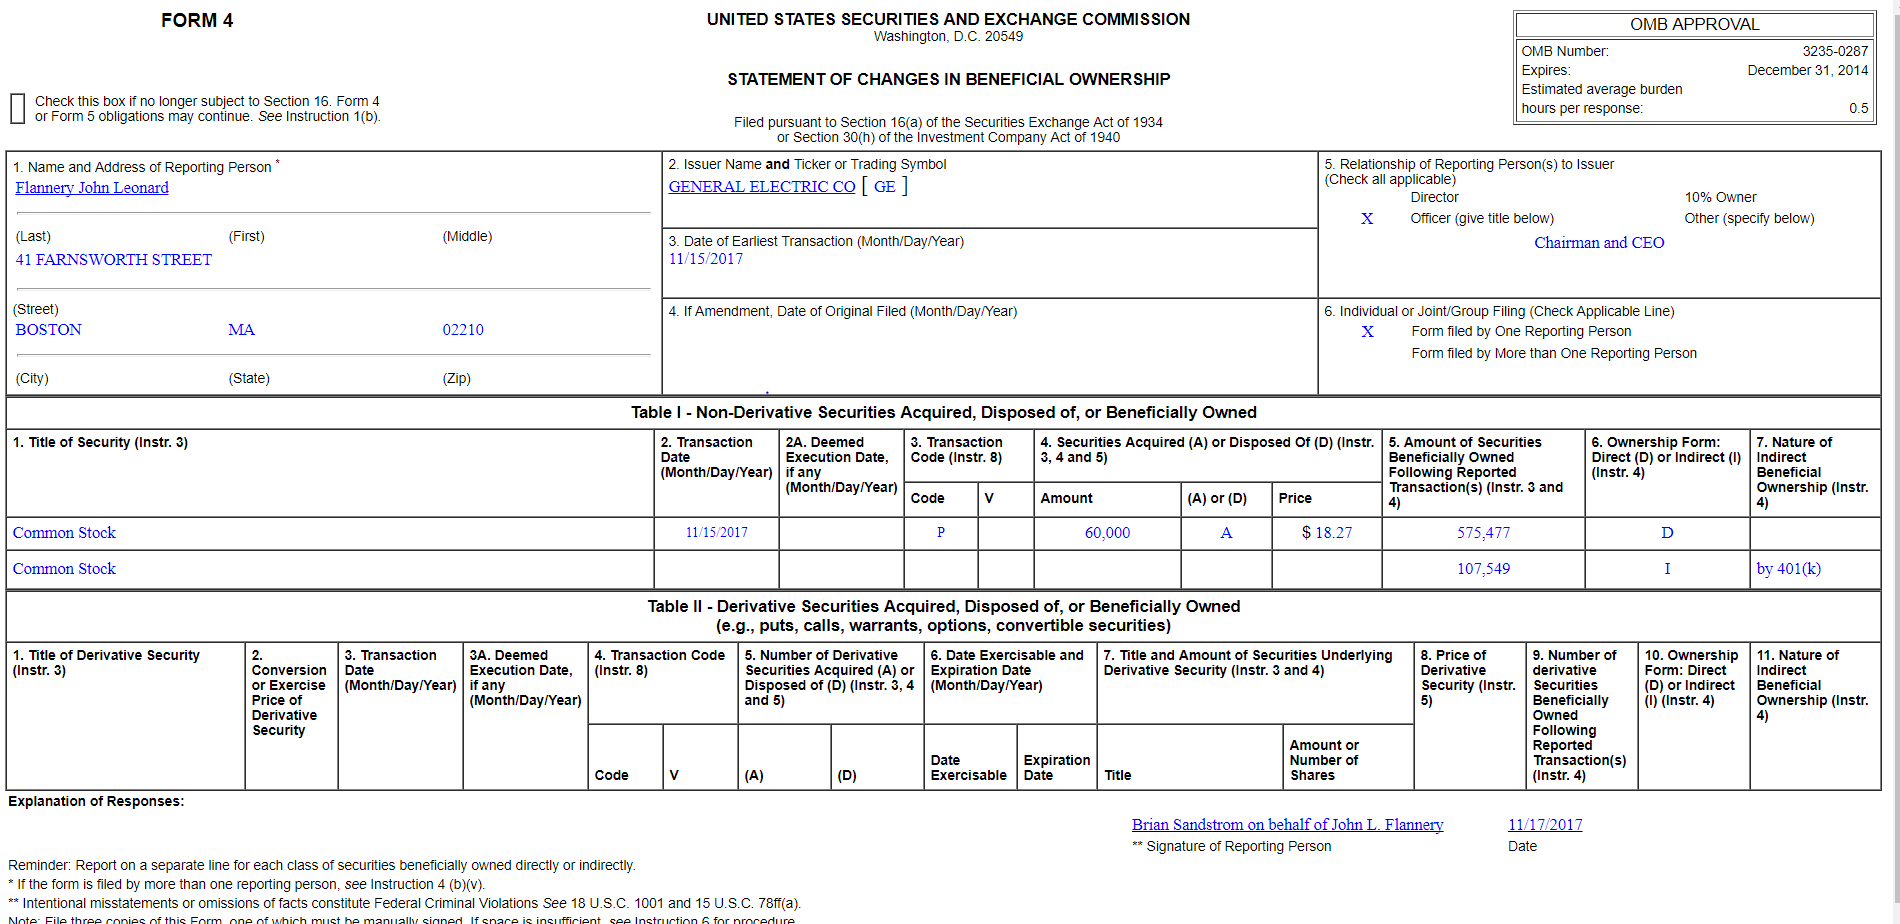 Ceo john flannery buys 60k shares of stock signaling its a buy a director stephen mollenkopf also bought 5000 shares you can view that document here biocorpaavc Gallery